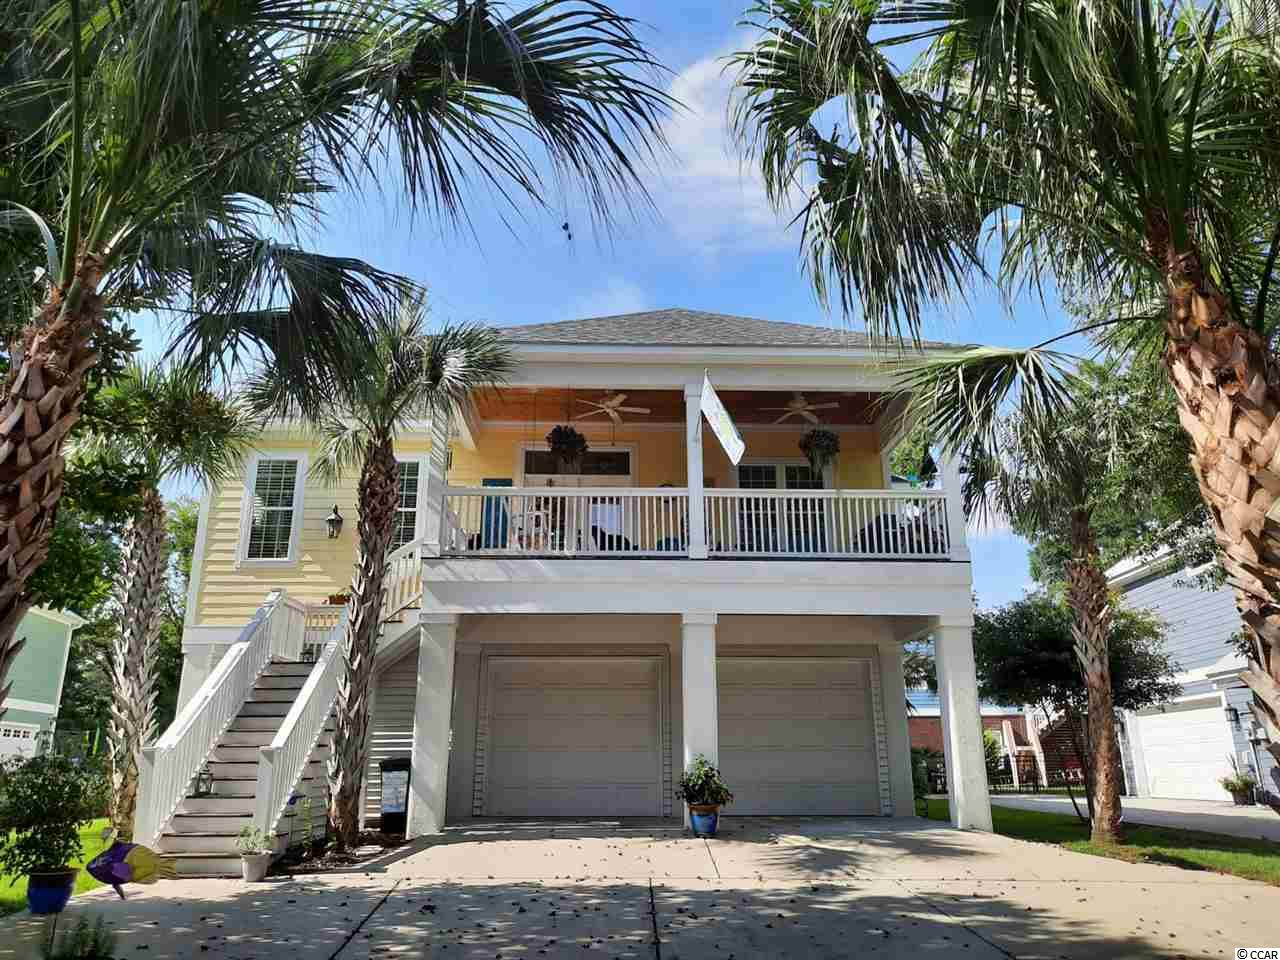 """Paradise in the Inlet.  This beautiful 5br/3ba  raised beach home is located in prestigious Creekside Cottages. Creekside cottages has that """"tucked away"""" feeling while being just across the street from the Murrells Inlet Marsh Walk! The Murrells Inlet Marsh walk is renowned for its waterfront restaurants and adventure excursions! Did I forget to mention you are a few short minutes from the beautiful sandy beaches that makes the SC coast so desirable. Huntington Beach State Park, with its year around amenities, is only 3 miles south!   You will enter this former MODEL home, with many upgrades, from the expansive  front porch.  You will certainly enjoy relaxing or swinging on the front porch while listening to the palm fronds rustle as the inlet breeze blows. The main floor  offers an open concept style.  The kitchen boasts  beautiful granite counters, custom cabinetry and stainless steel appliances  featuring a high end Fratelli Onofri Pinacle gas range. A large island and dining area provide ample room for entertaining.   The living room features a gas fireplace for those (sometimes) chilly nights. This beautiful home also offers a gas tankless water heater!  Beautiful hardwood floors are throughout the main living area as well as on the ground level. Three roomy bedrooms are located on the main floor.  The owners suite, with access to the screened back  porch is very spacious. The en suite features a double sink vanity, walk in shower and large walk in  closet with built in shelving and drawer unit.  The ground level has a PRIVATE entry with another Large owners en suite.  There is also another bedroom with room  enough for several bunks.  This room has previously been used as an office and/or a gym space.  There is a LARGE mudroom with washer and dryer (conveying) on the ground level as well as an additional fridge and freezer that will also convey.  The garage is very spacious with many storage options providing plenty of room for all of your toys!  If you are lo"""